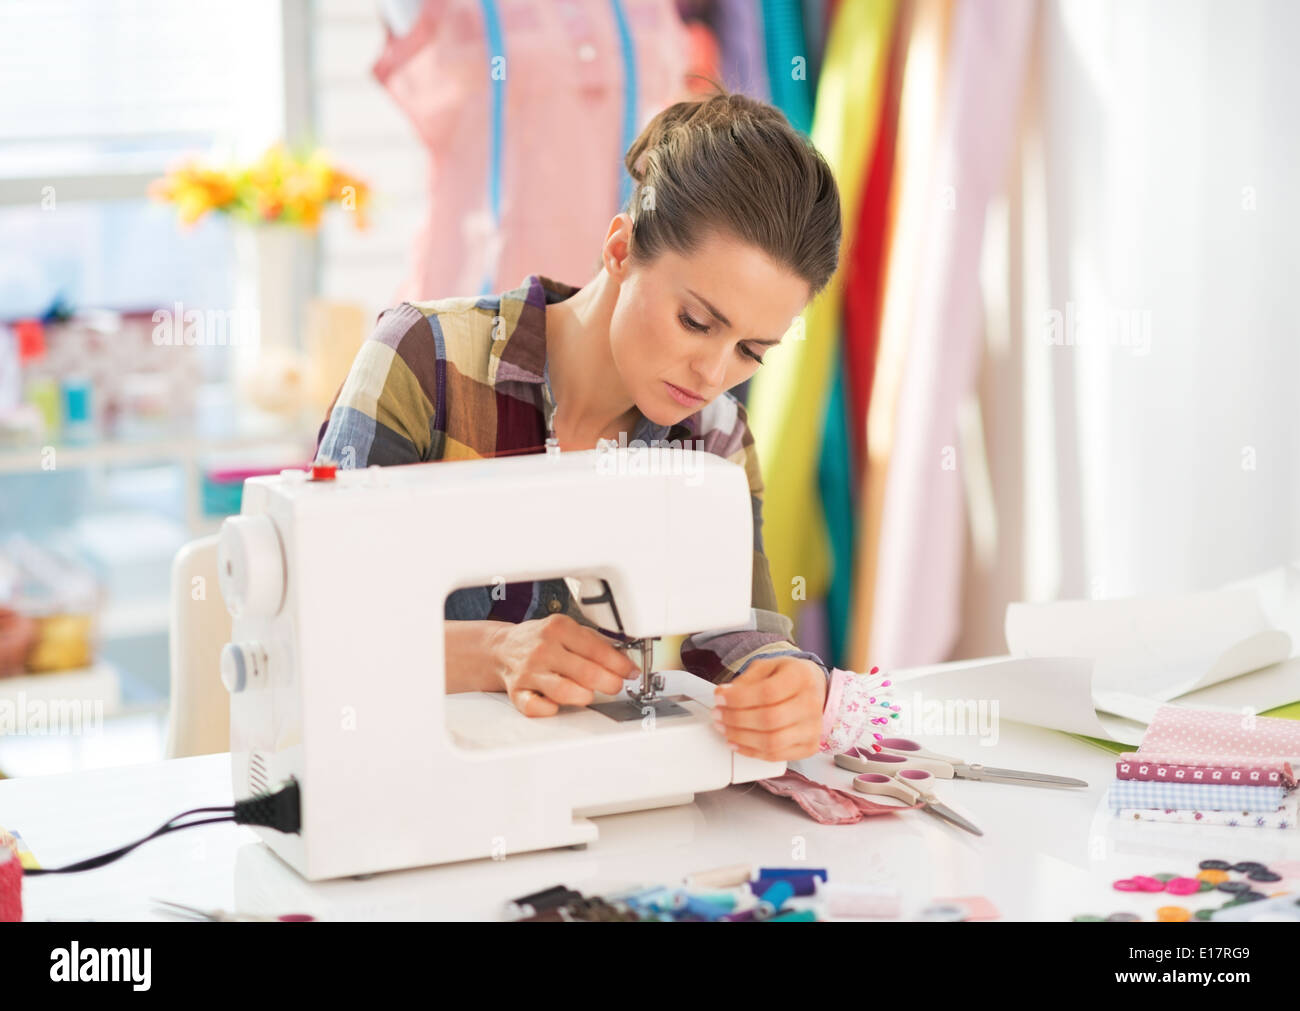 Seamstress working with sewing machine - Stock Image